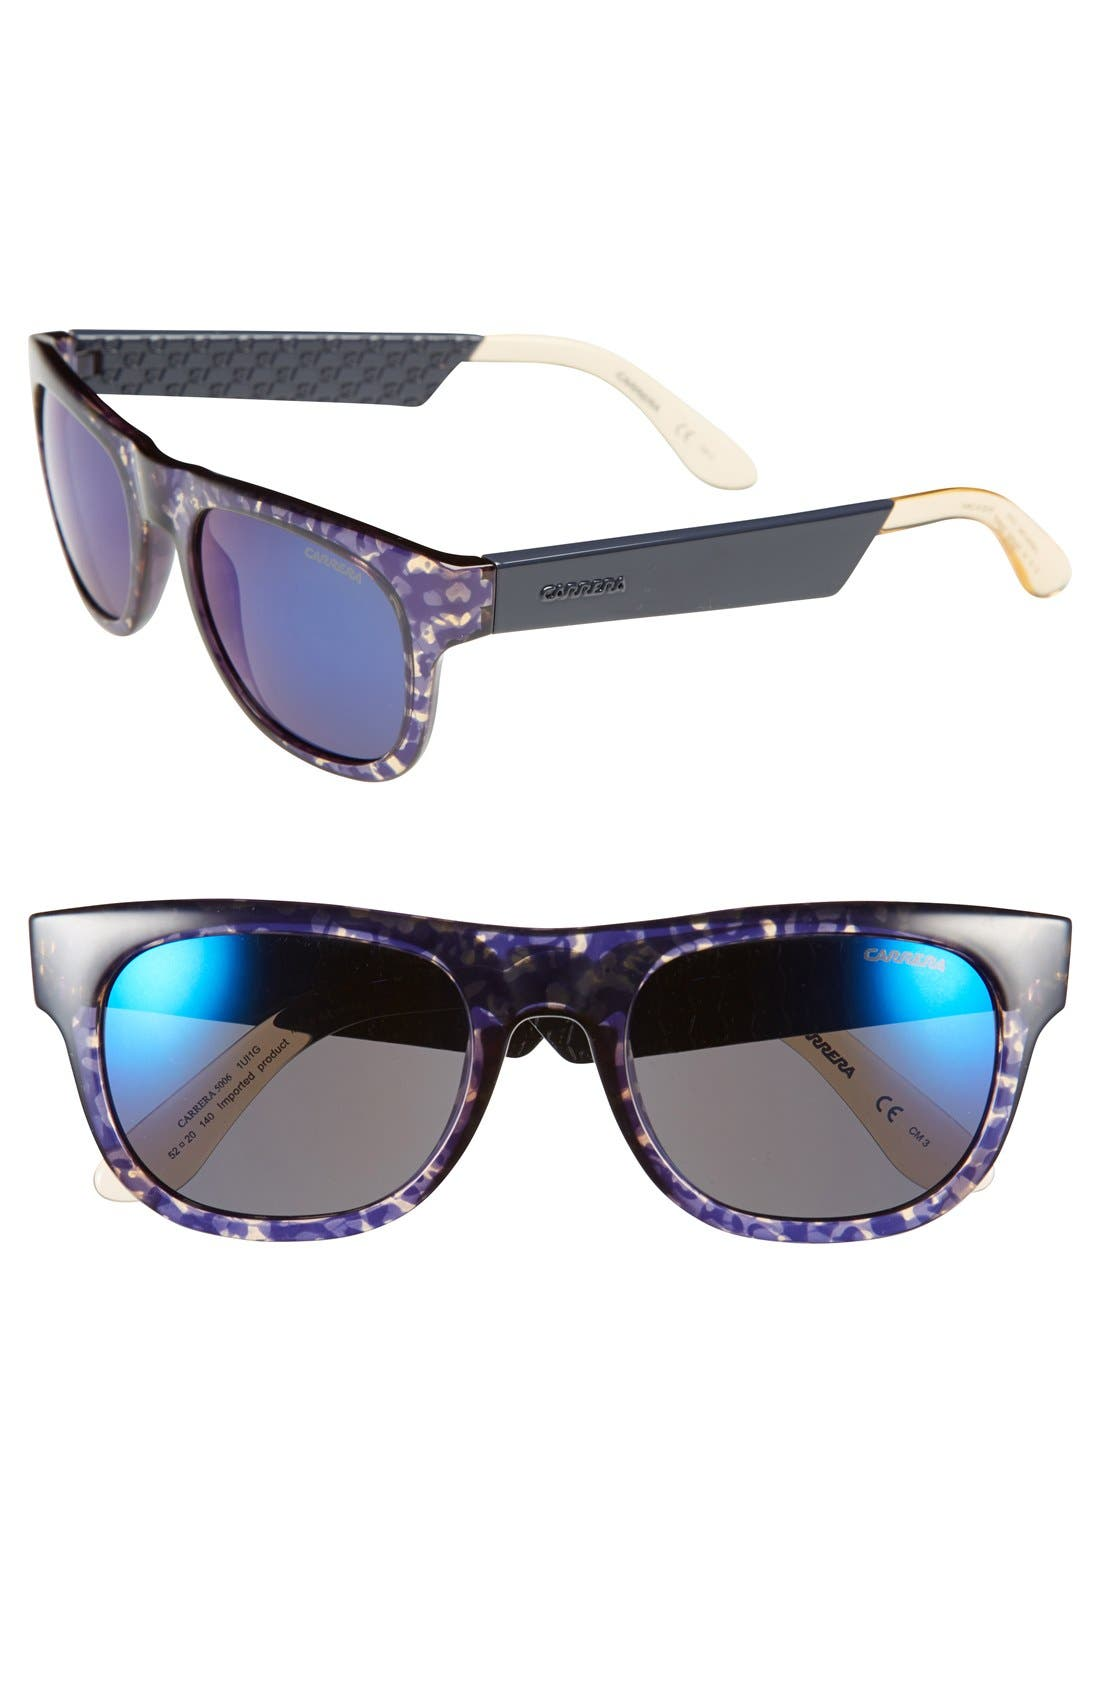 Main Image - Carrera Eyewear 52mm Sunglasses